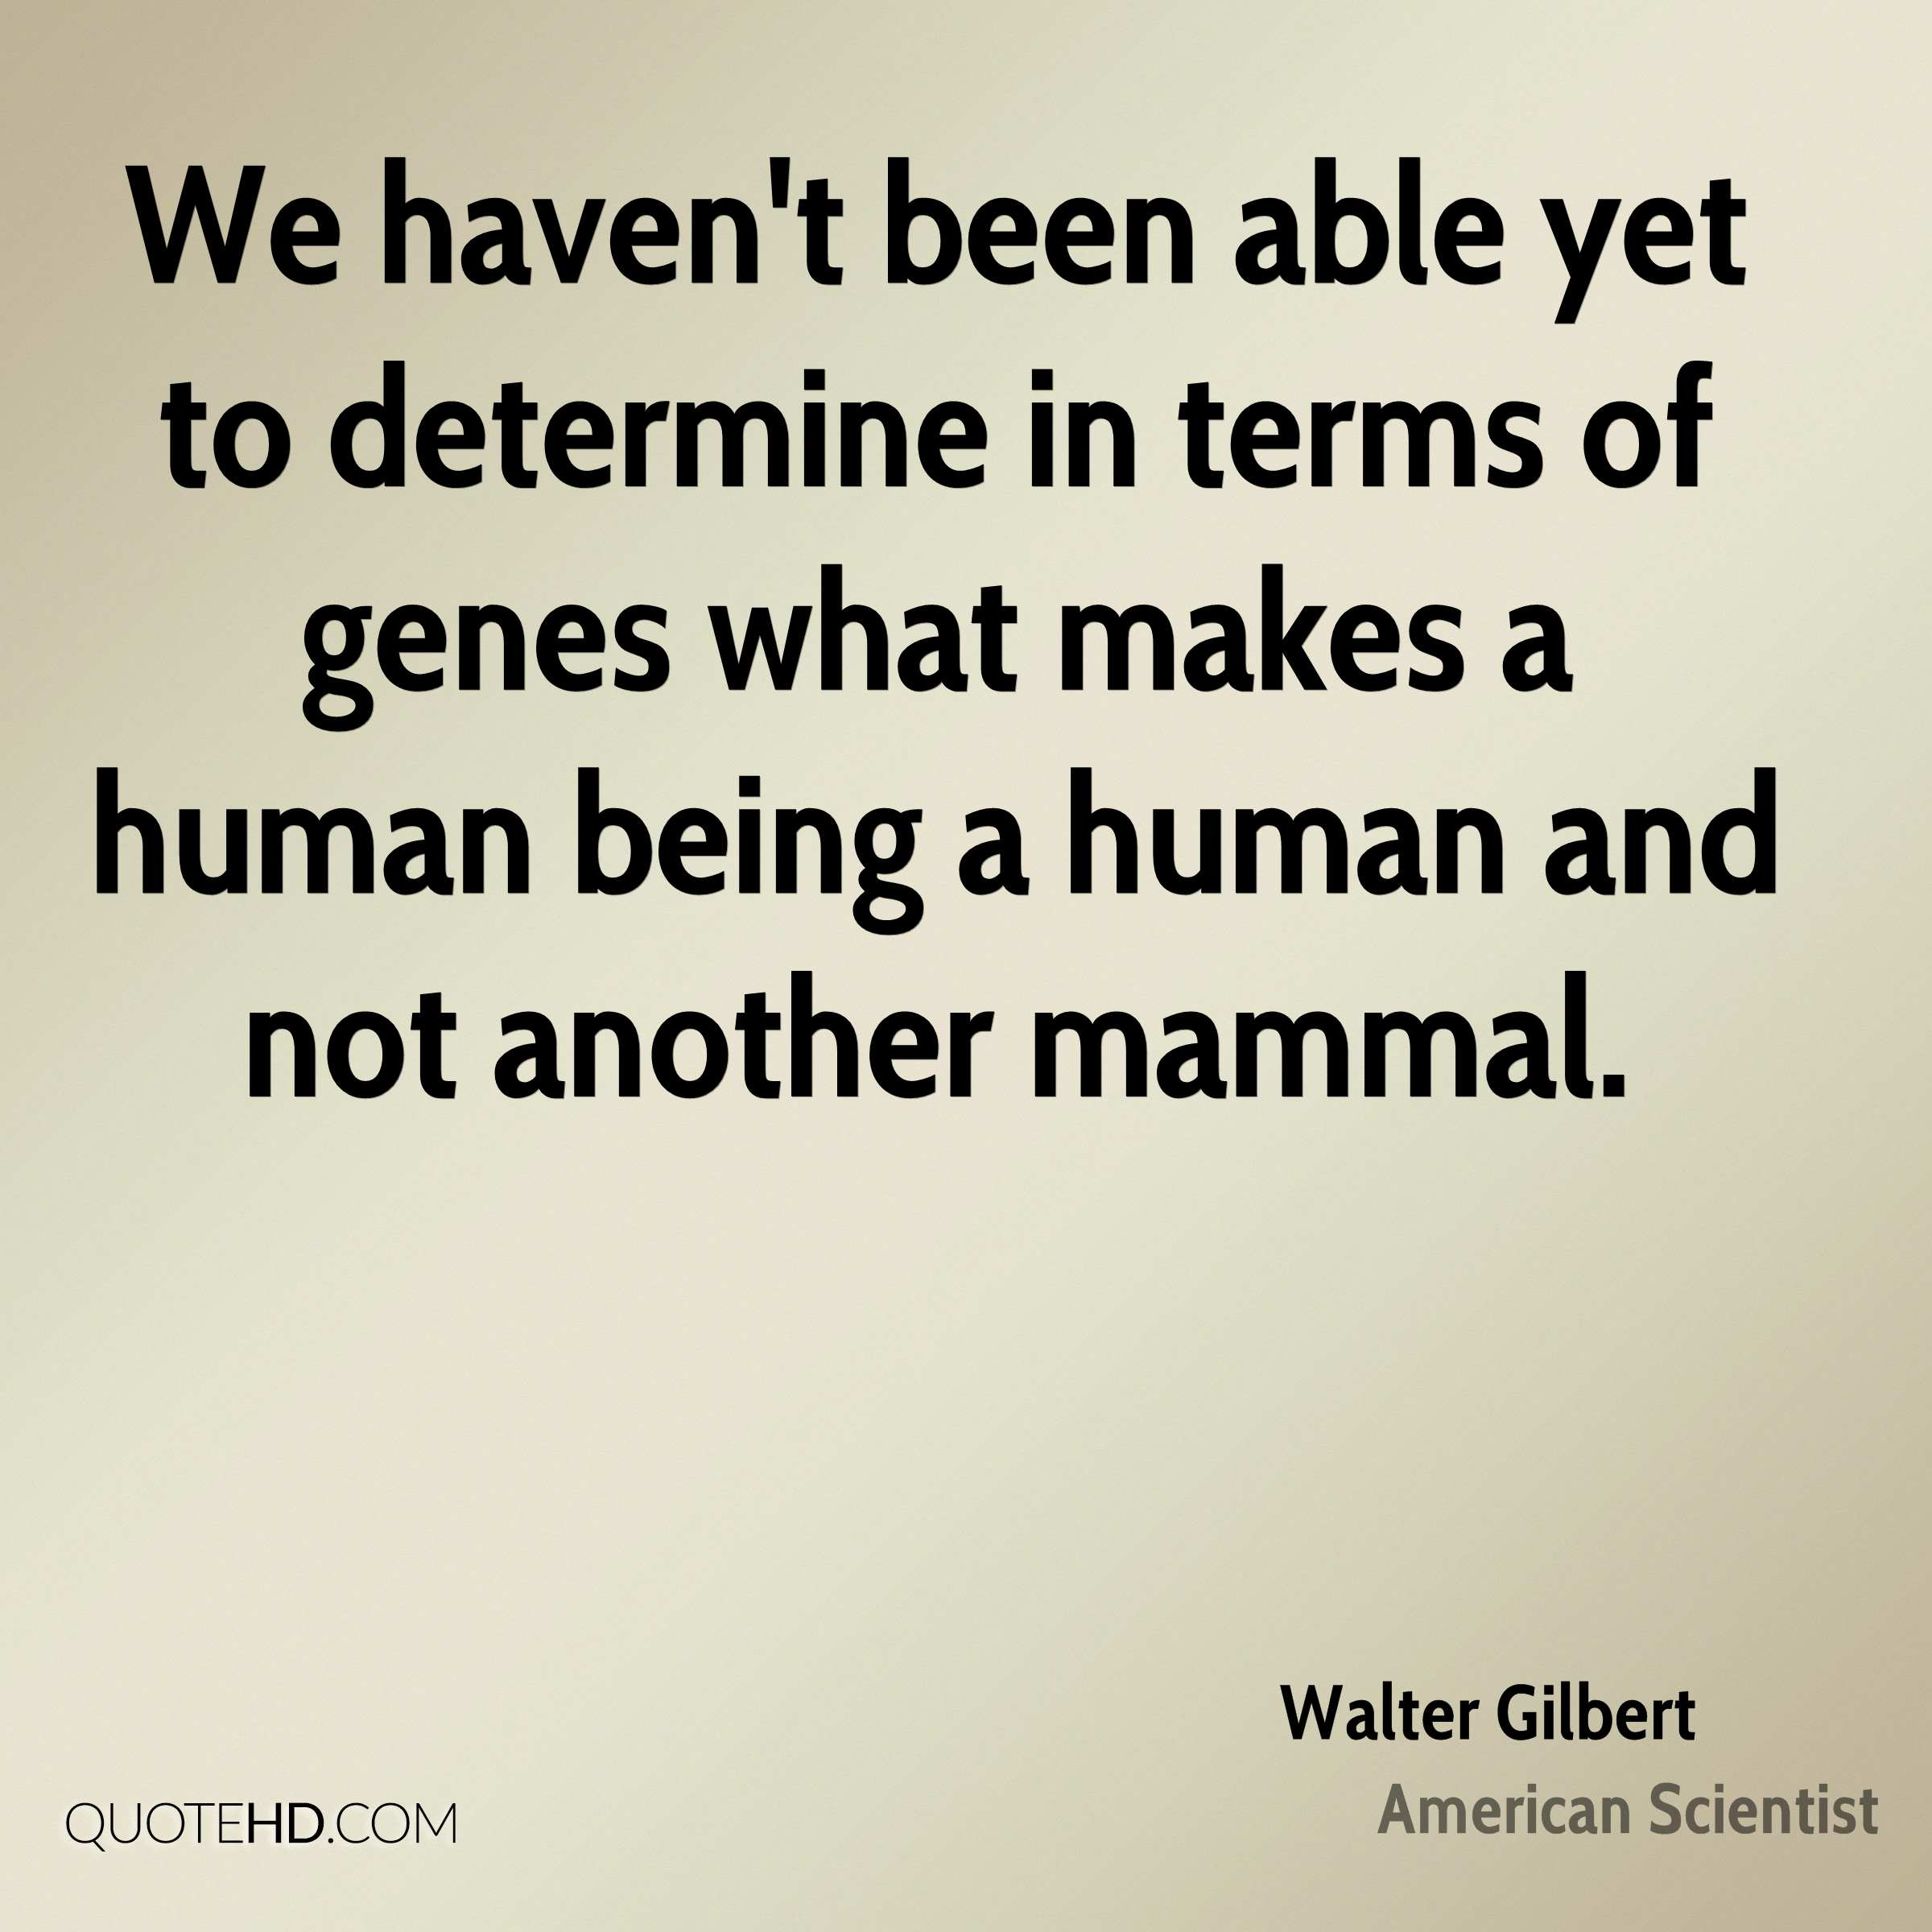 We haven't been able yet to determine in terms of genes what makes a human being a human and not another mammal.